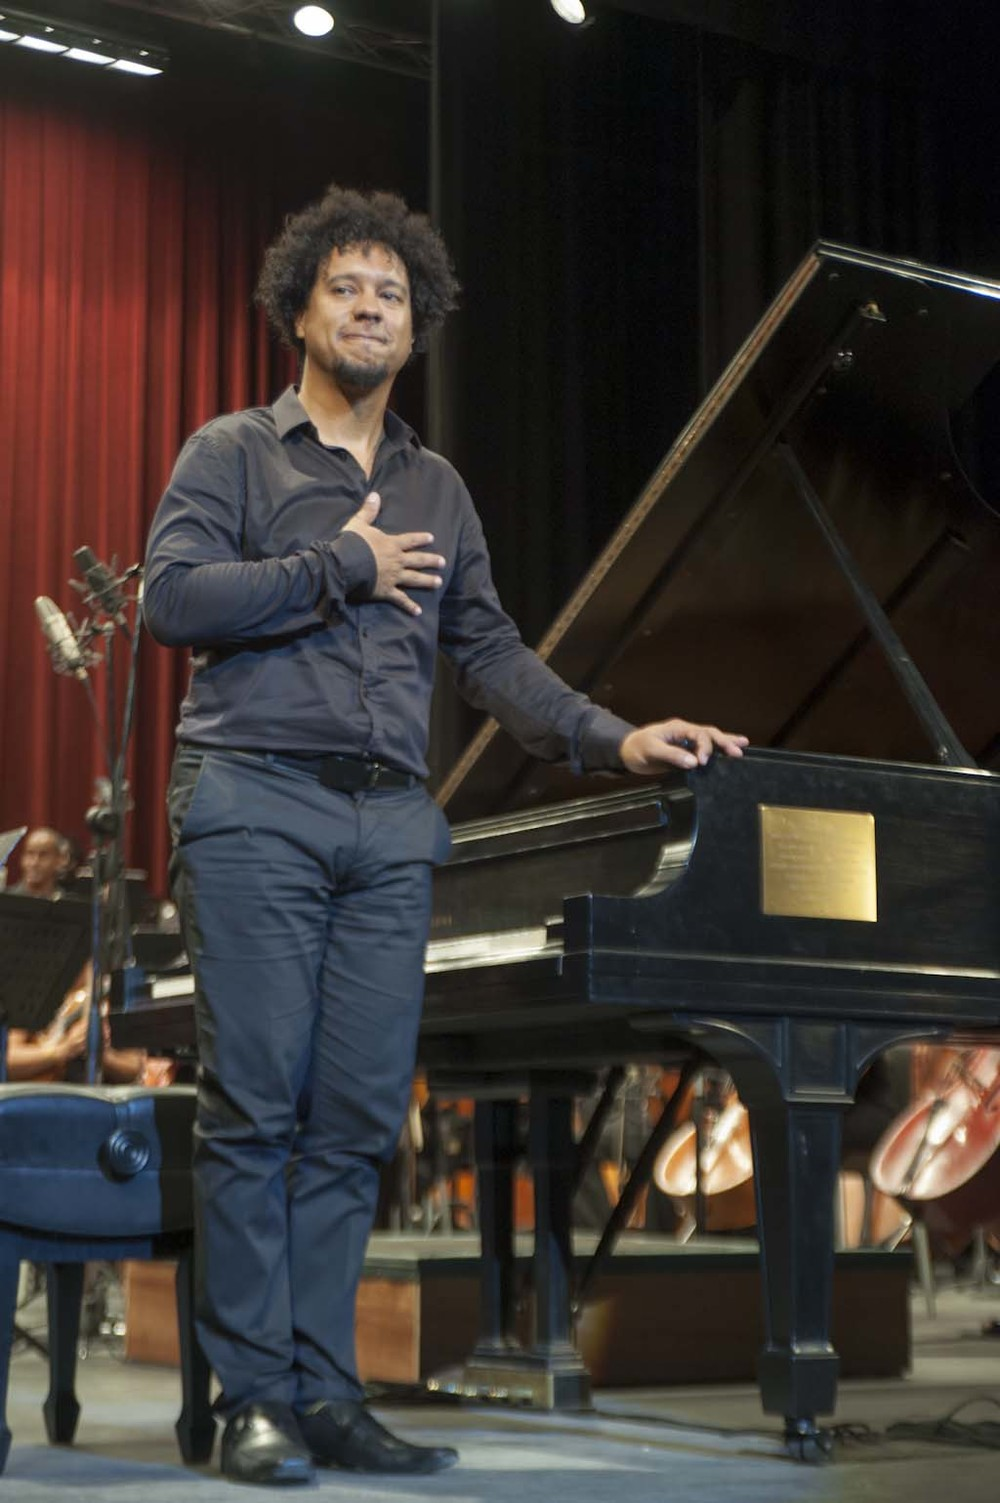 Aldo López-Gavilán after this passionate performance of Rachmaninoff's Concerto #3 in Havana.